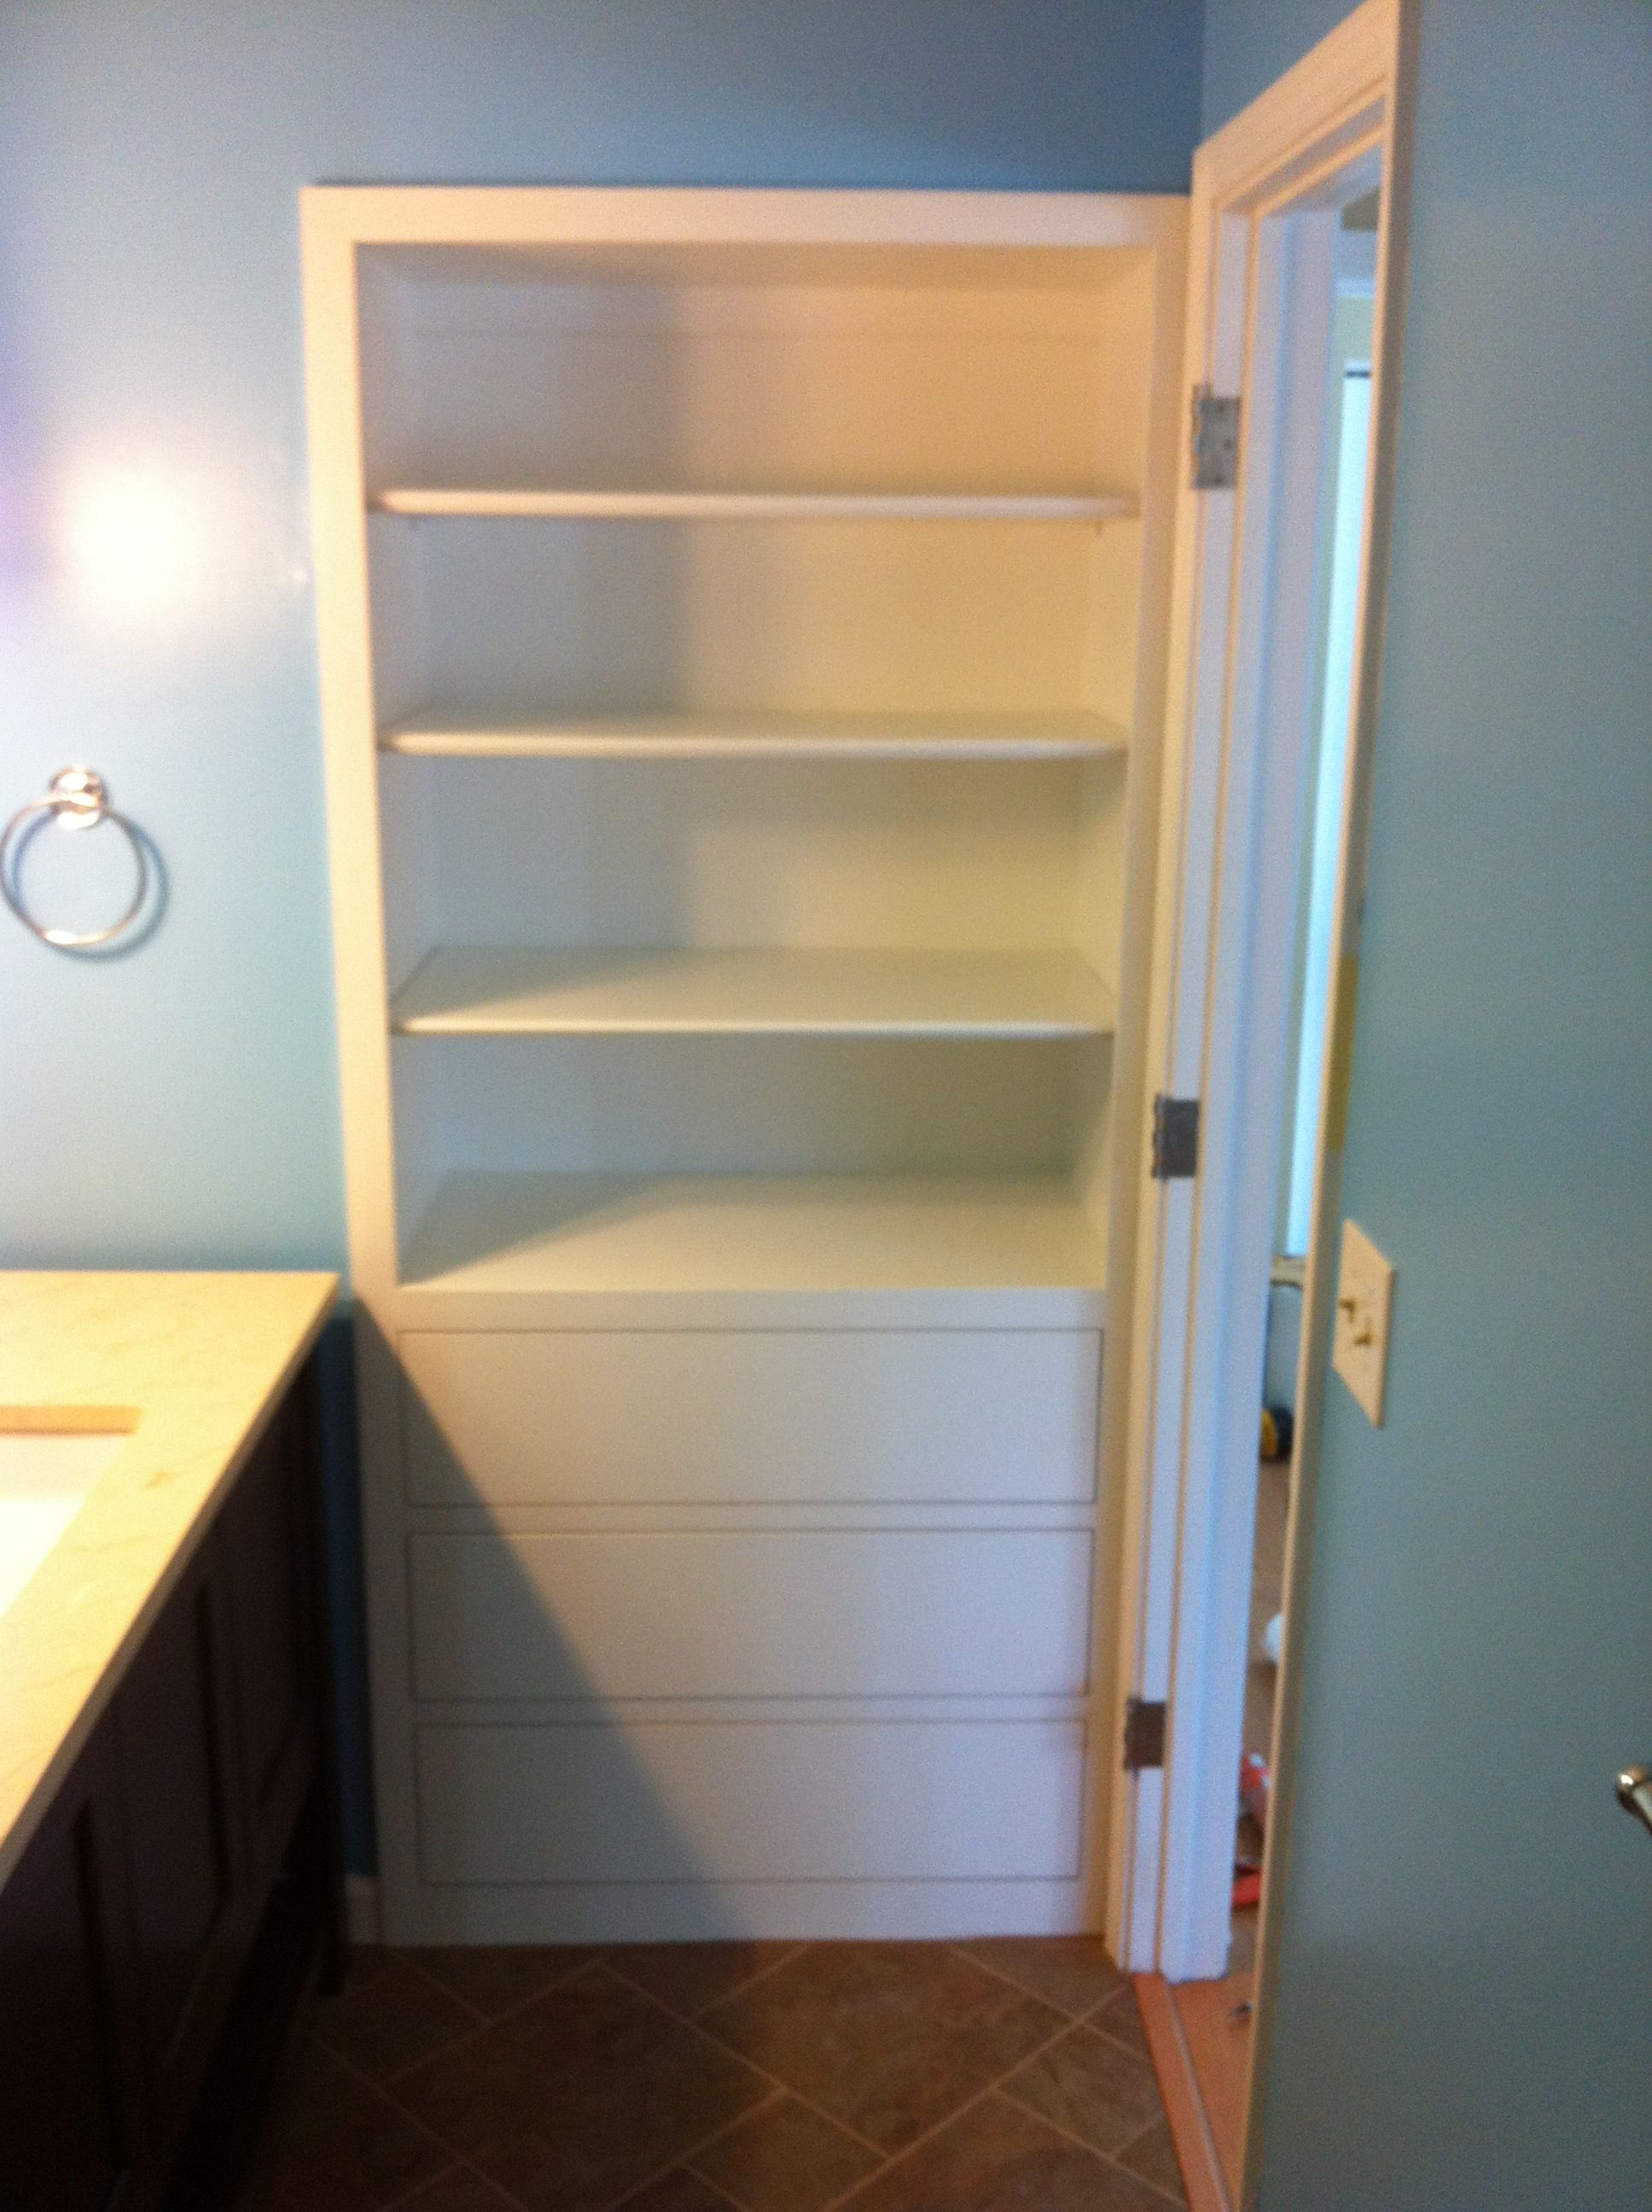 Recessed Bathroom Storage Cabinet Google Search Ect inside proportions 1936 X 2592